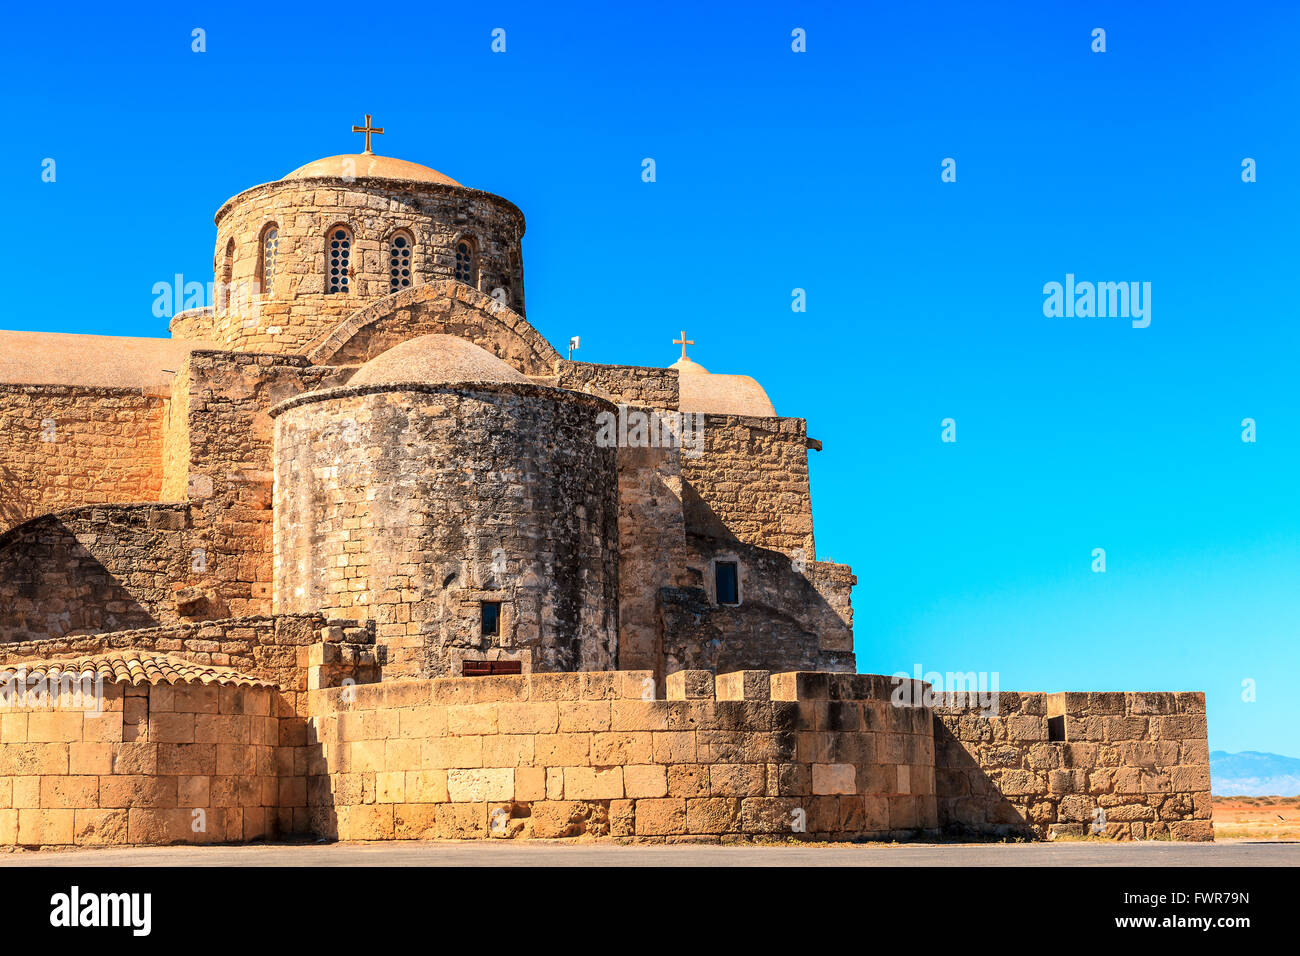 Historic St. Barnabas Church in Cyprus. - Stock Image